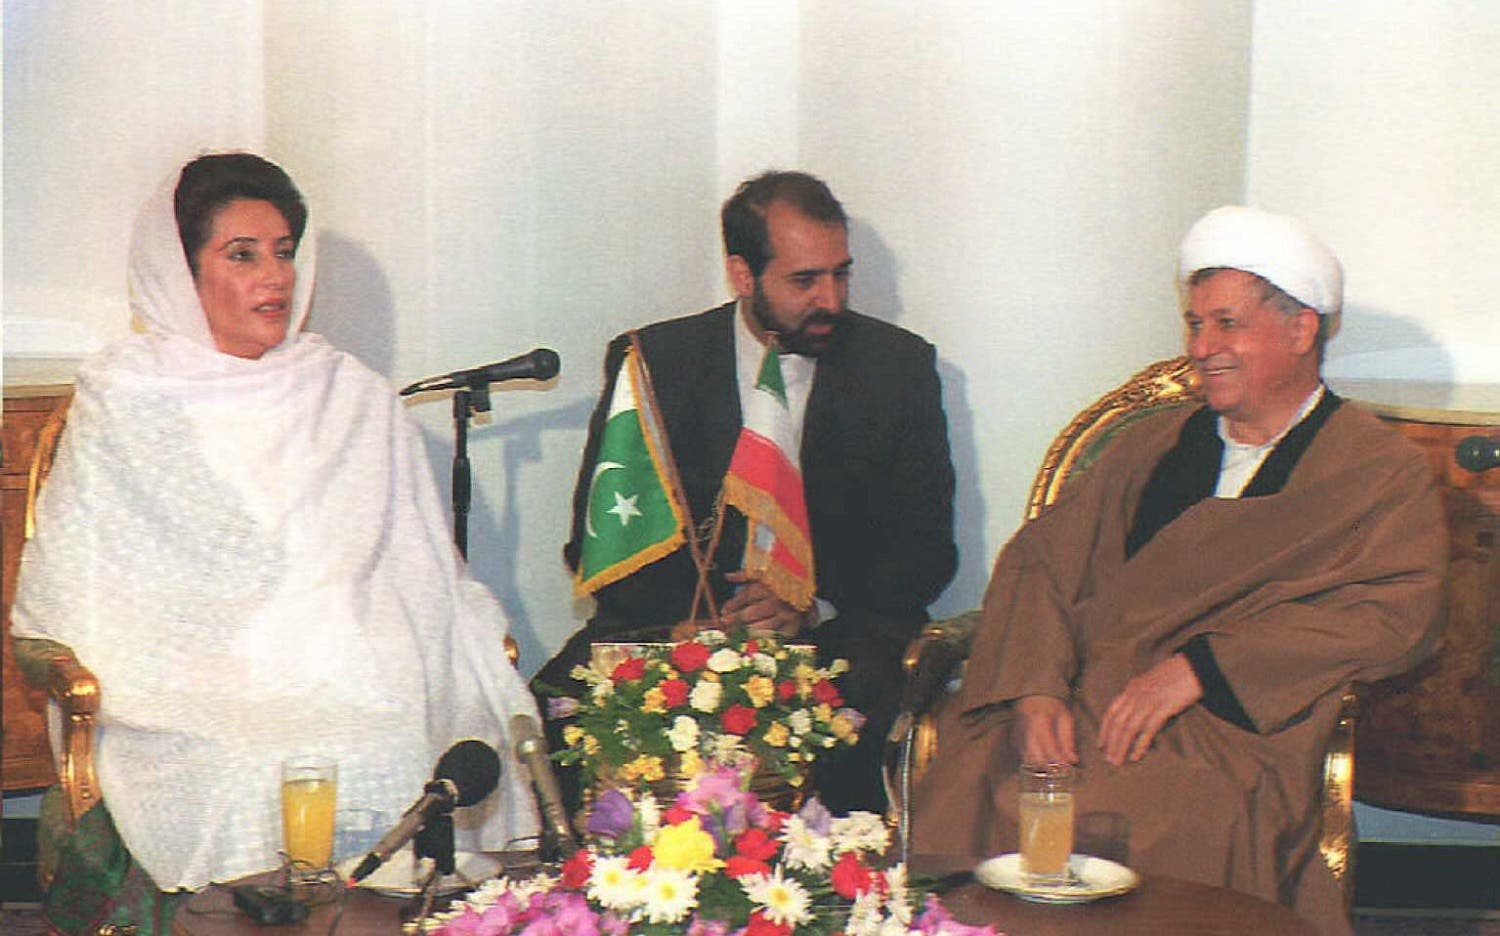 Pakistani Prime Minister Benazir Bhutto meets Iranian President Ali Akbar Hachemi-Rafsandjani (R) November 7, 1995, in Tehran. Benazir Bhutto denied any rivalry between her country and Iran for influence in their common neighbor Afghanistan (Photo: AFP)